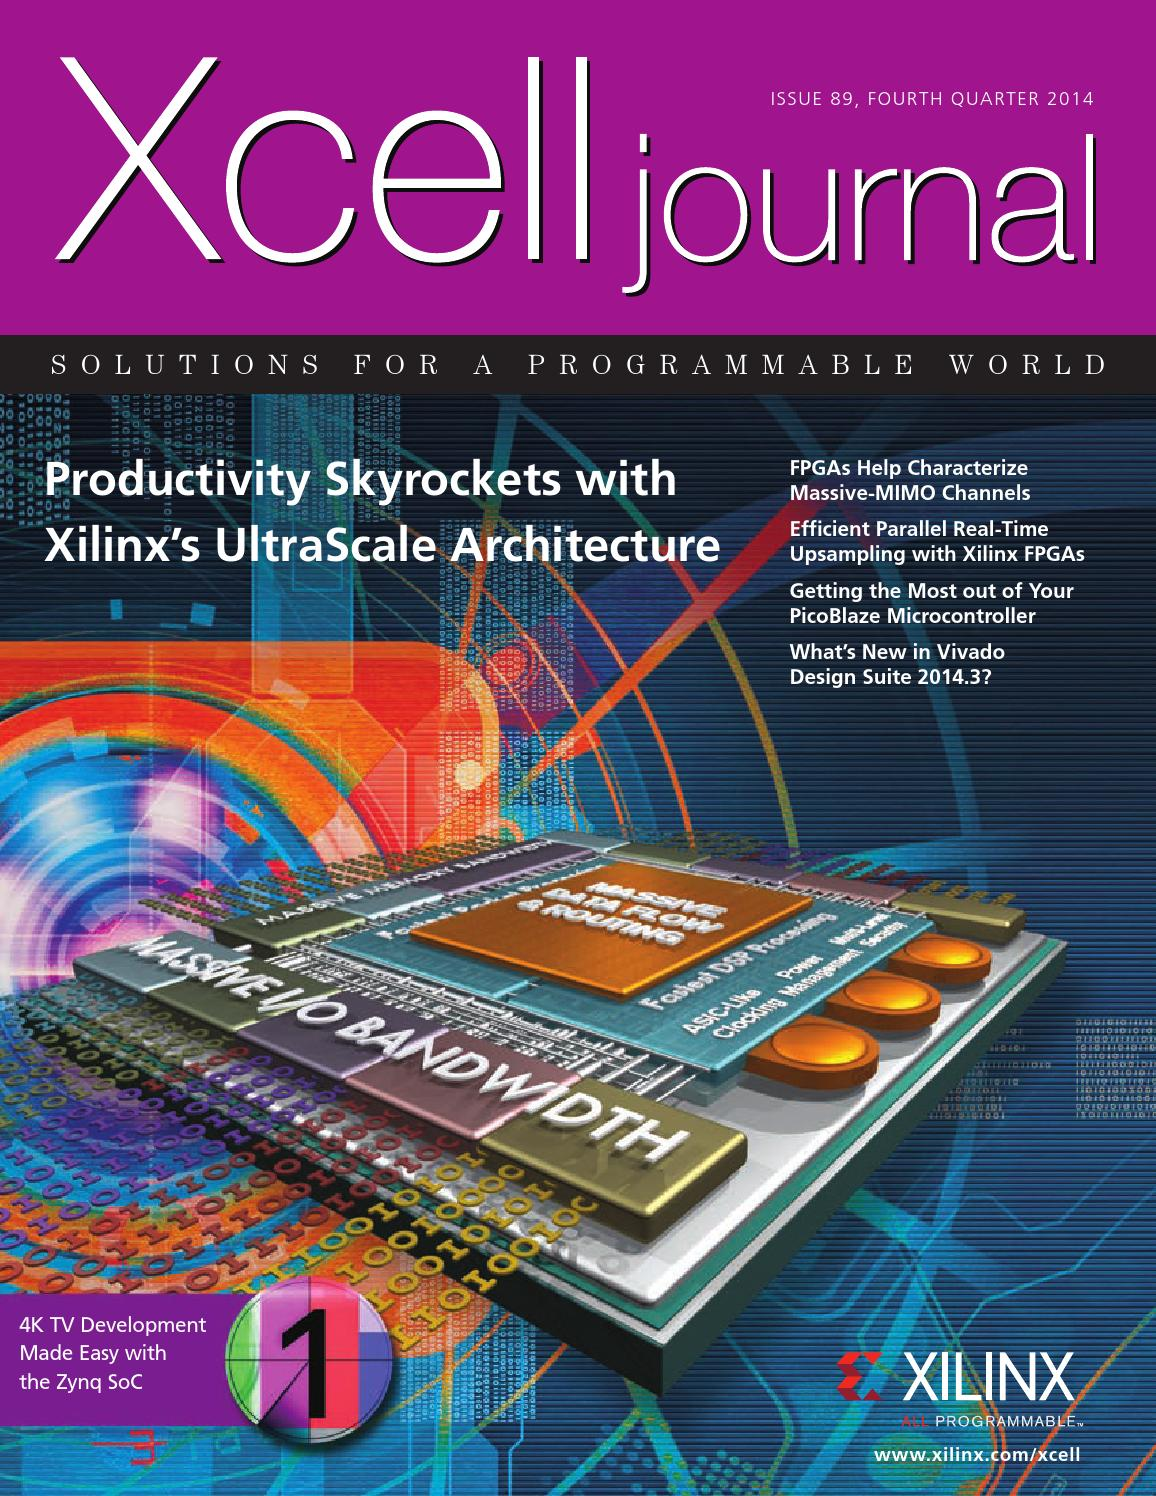 Xcell Journal Issue 89 By Xilinx Publications Issuu Online Circuit Simulator Analog Digital Mcu Vhdl And Rf Circuits